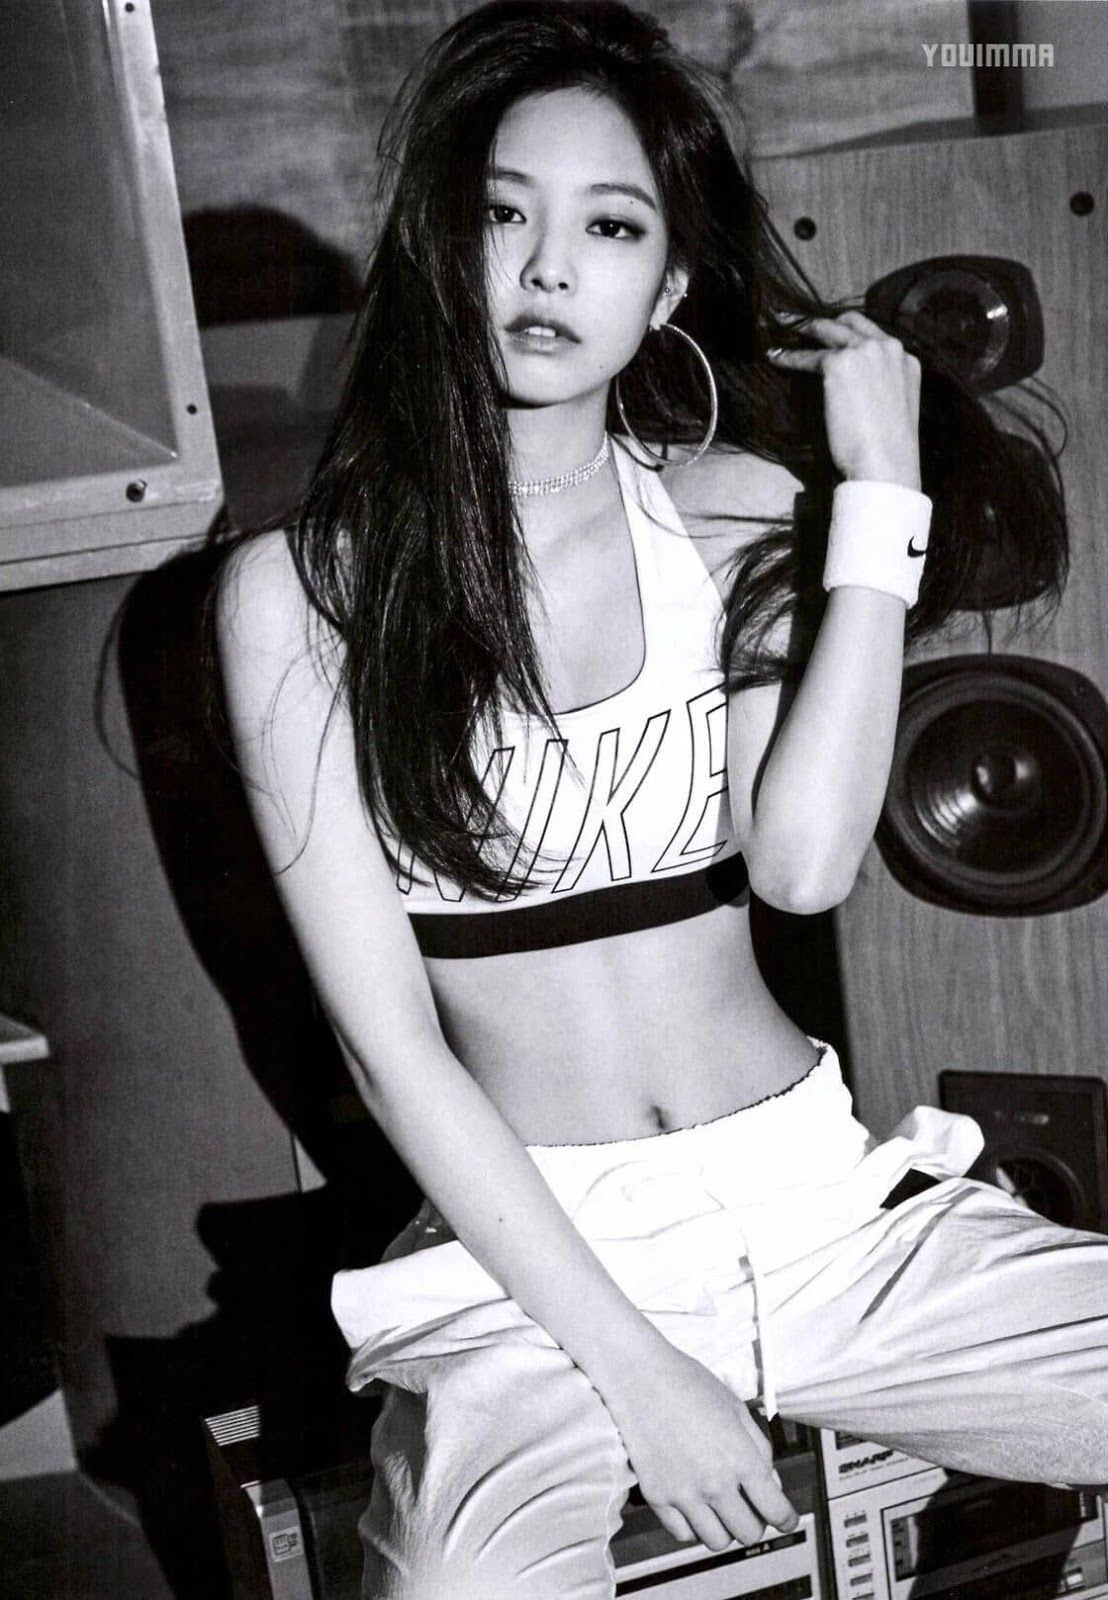 29 Pictures Of Blackpink Jennie S Hot Abs You Should Not Miss Blackpink Fashion Blackpink Jennie Kpop Girls